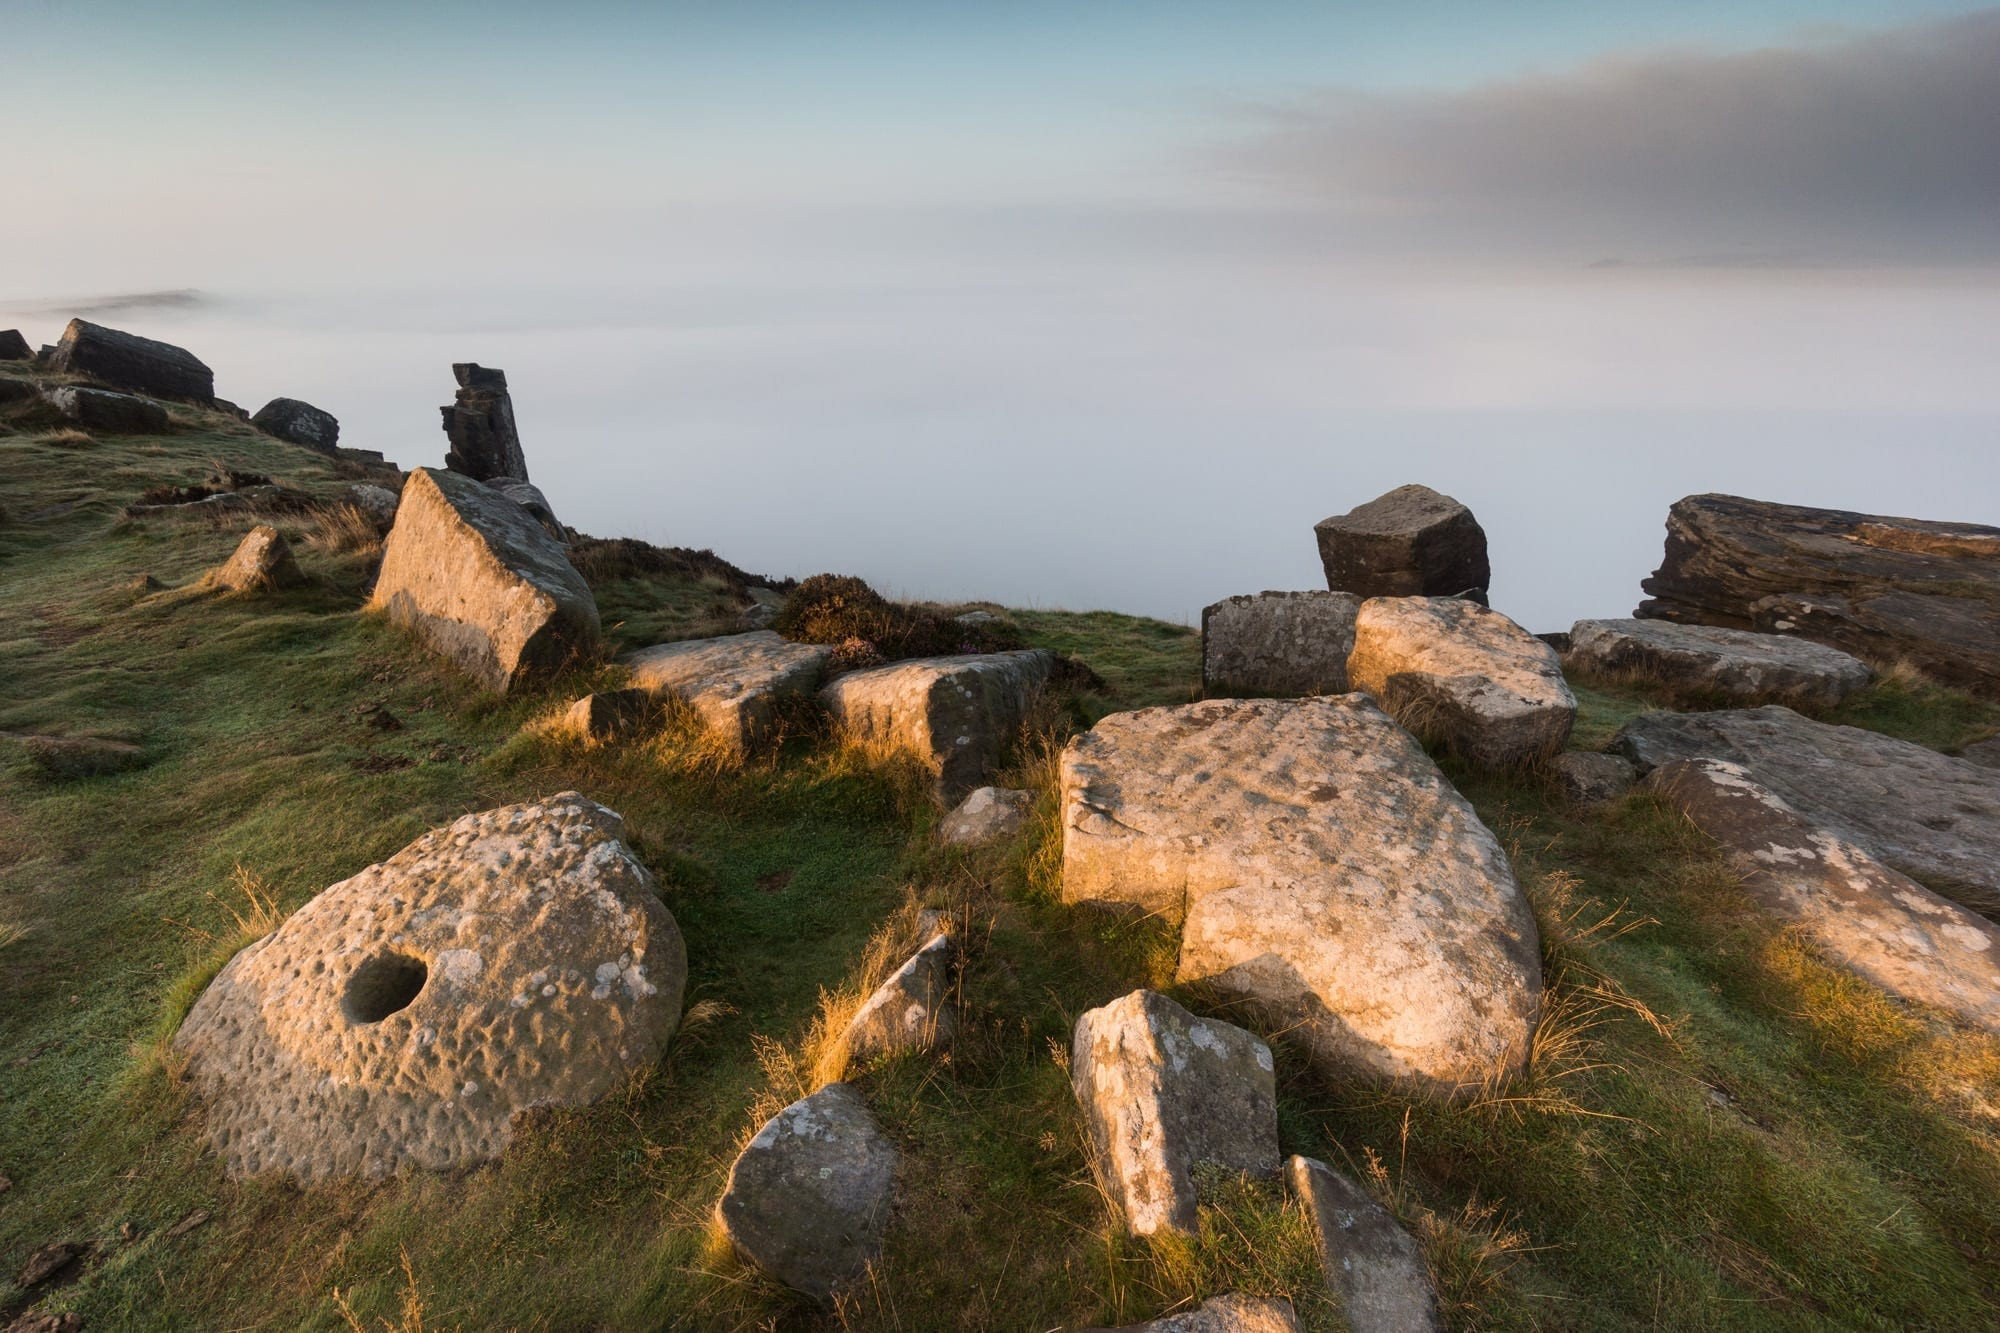 Curbar Edge Millstones and Mist - Gritstone Edges Peak District Photography Workshop